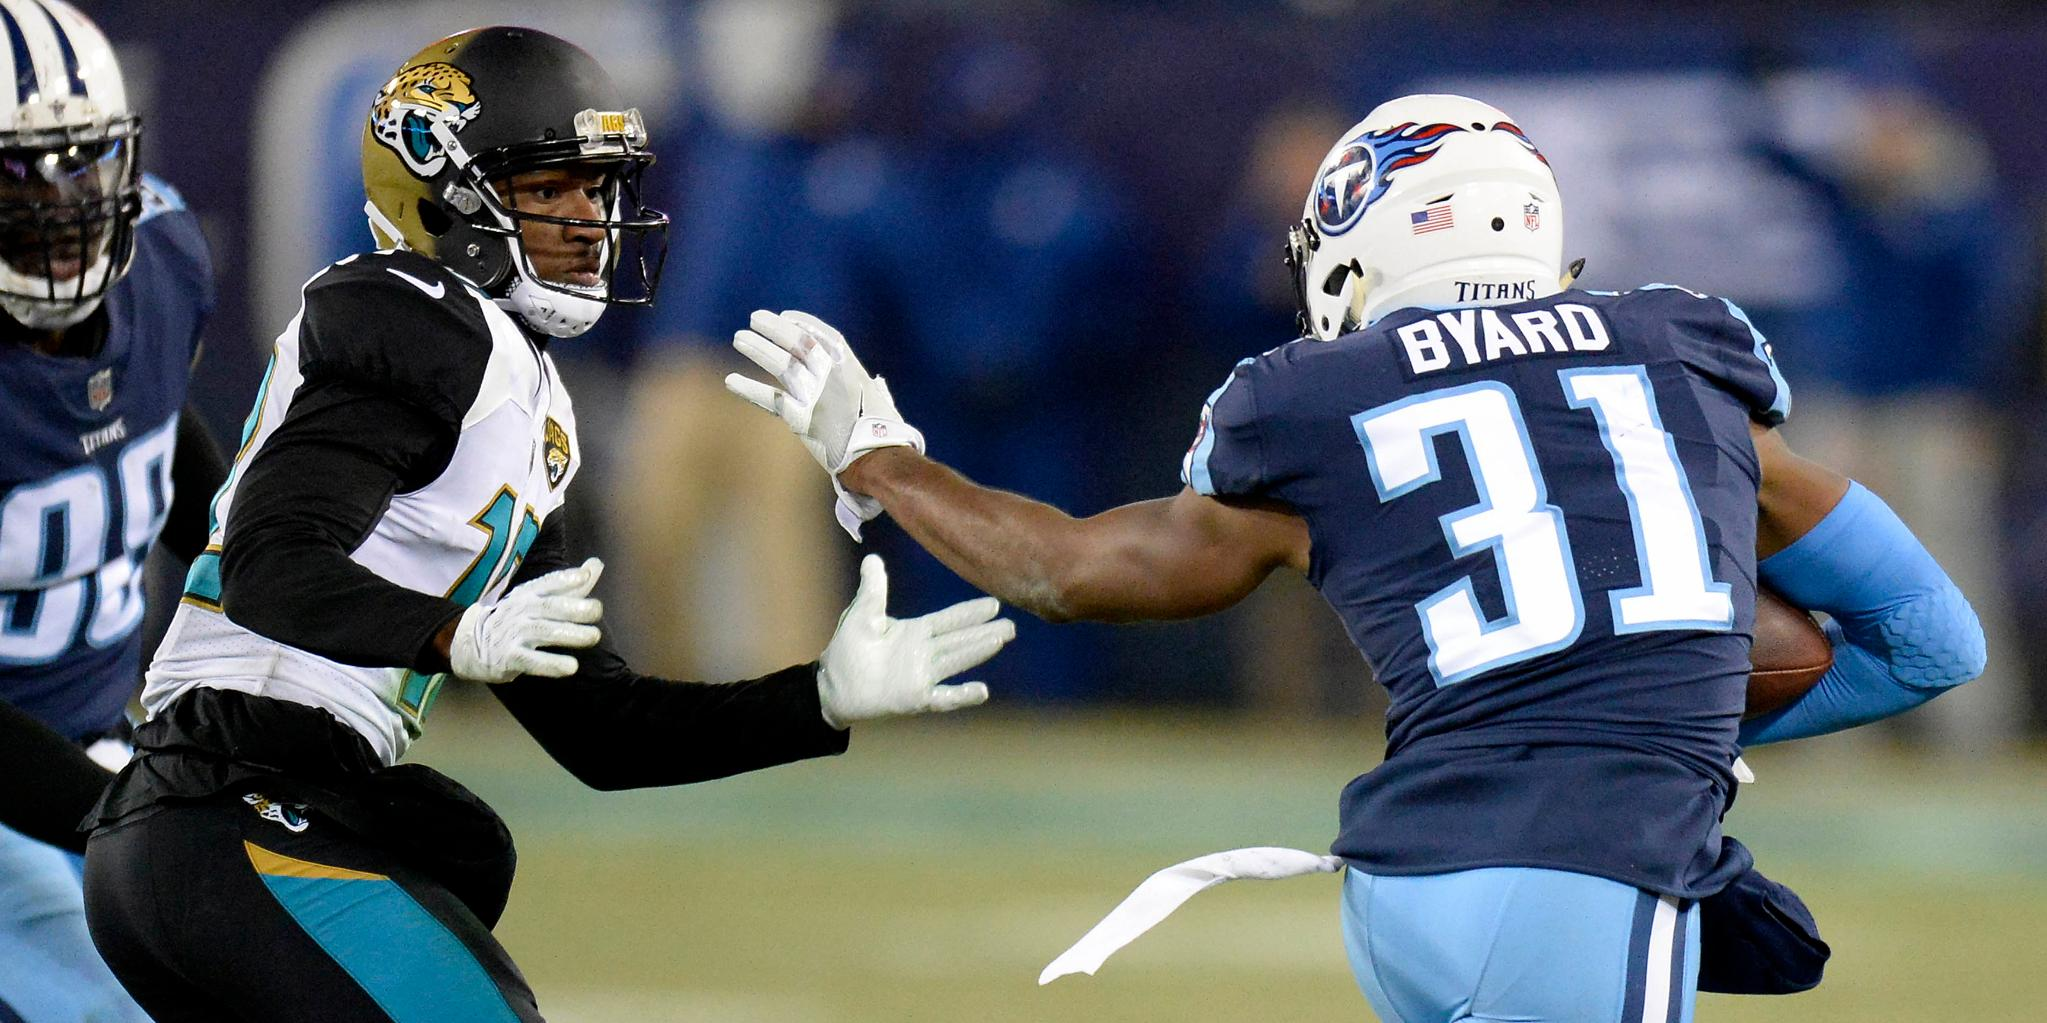 The @Titans beat the @Jaguars twice in 2017.  The Jags hope to fix that: https://t.co/4OFJRkcSCx https://t.co/UcCDZTb8hS